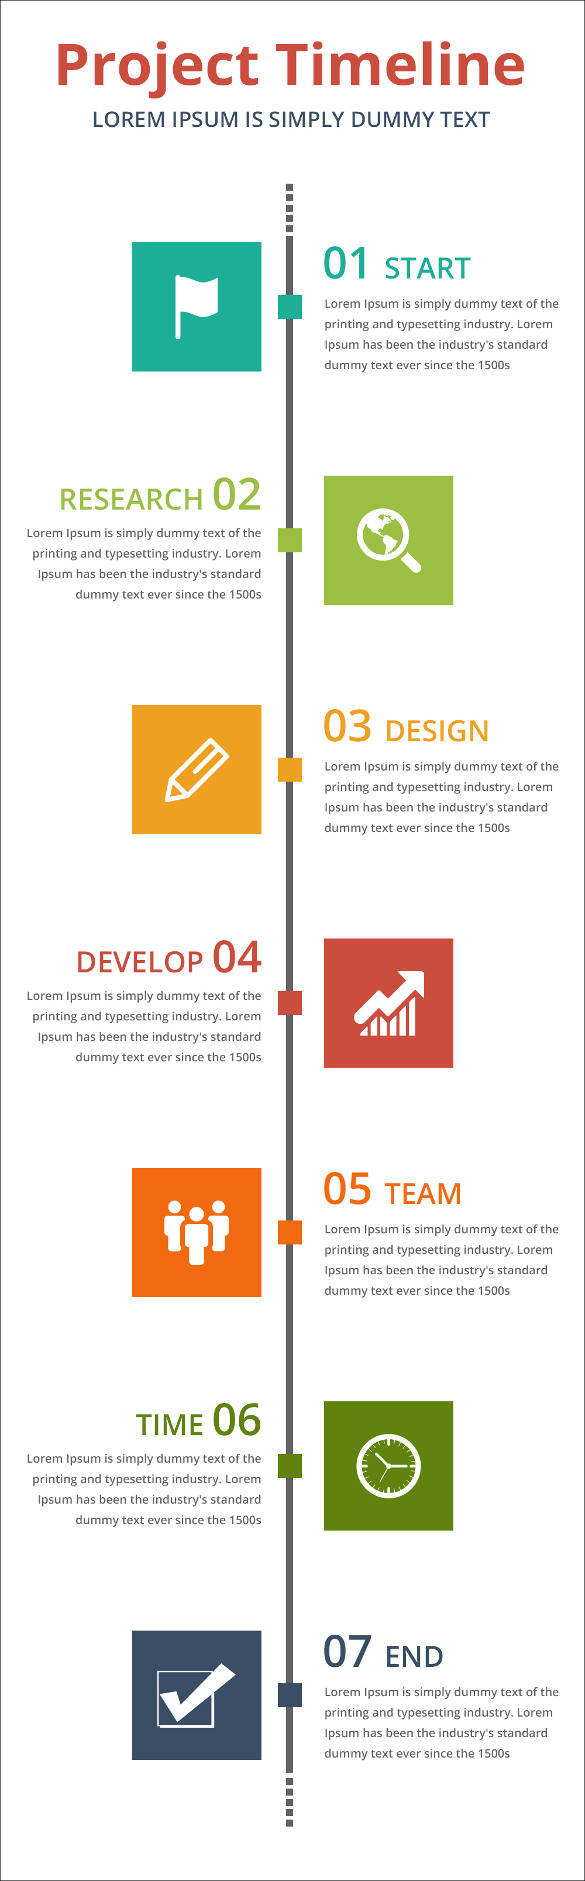 Project Timeline Templates   19  Free Word, Ppt Format Download Throughout Project Timeline Template Ppt Free